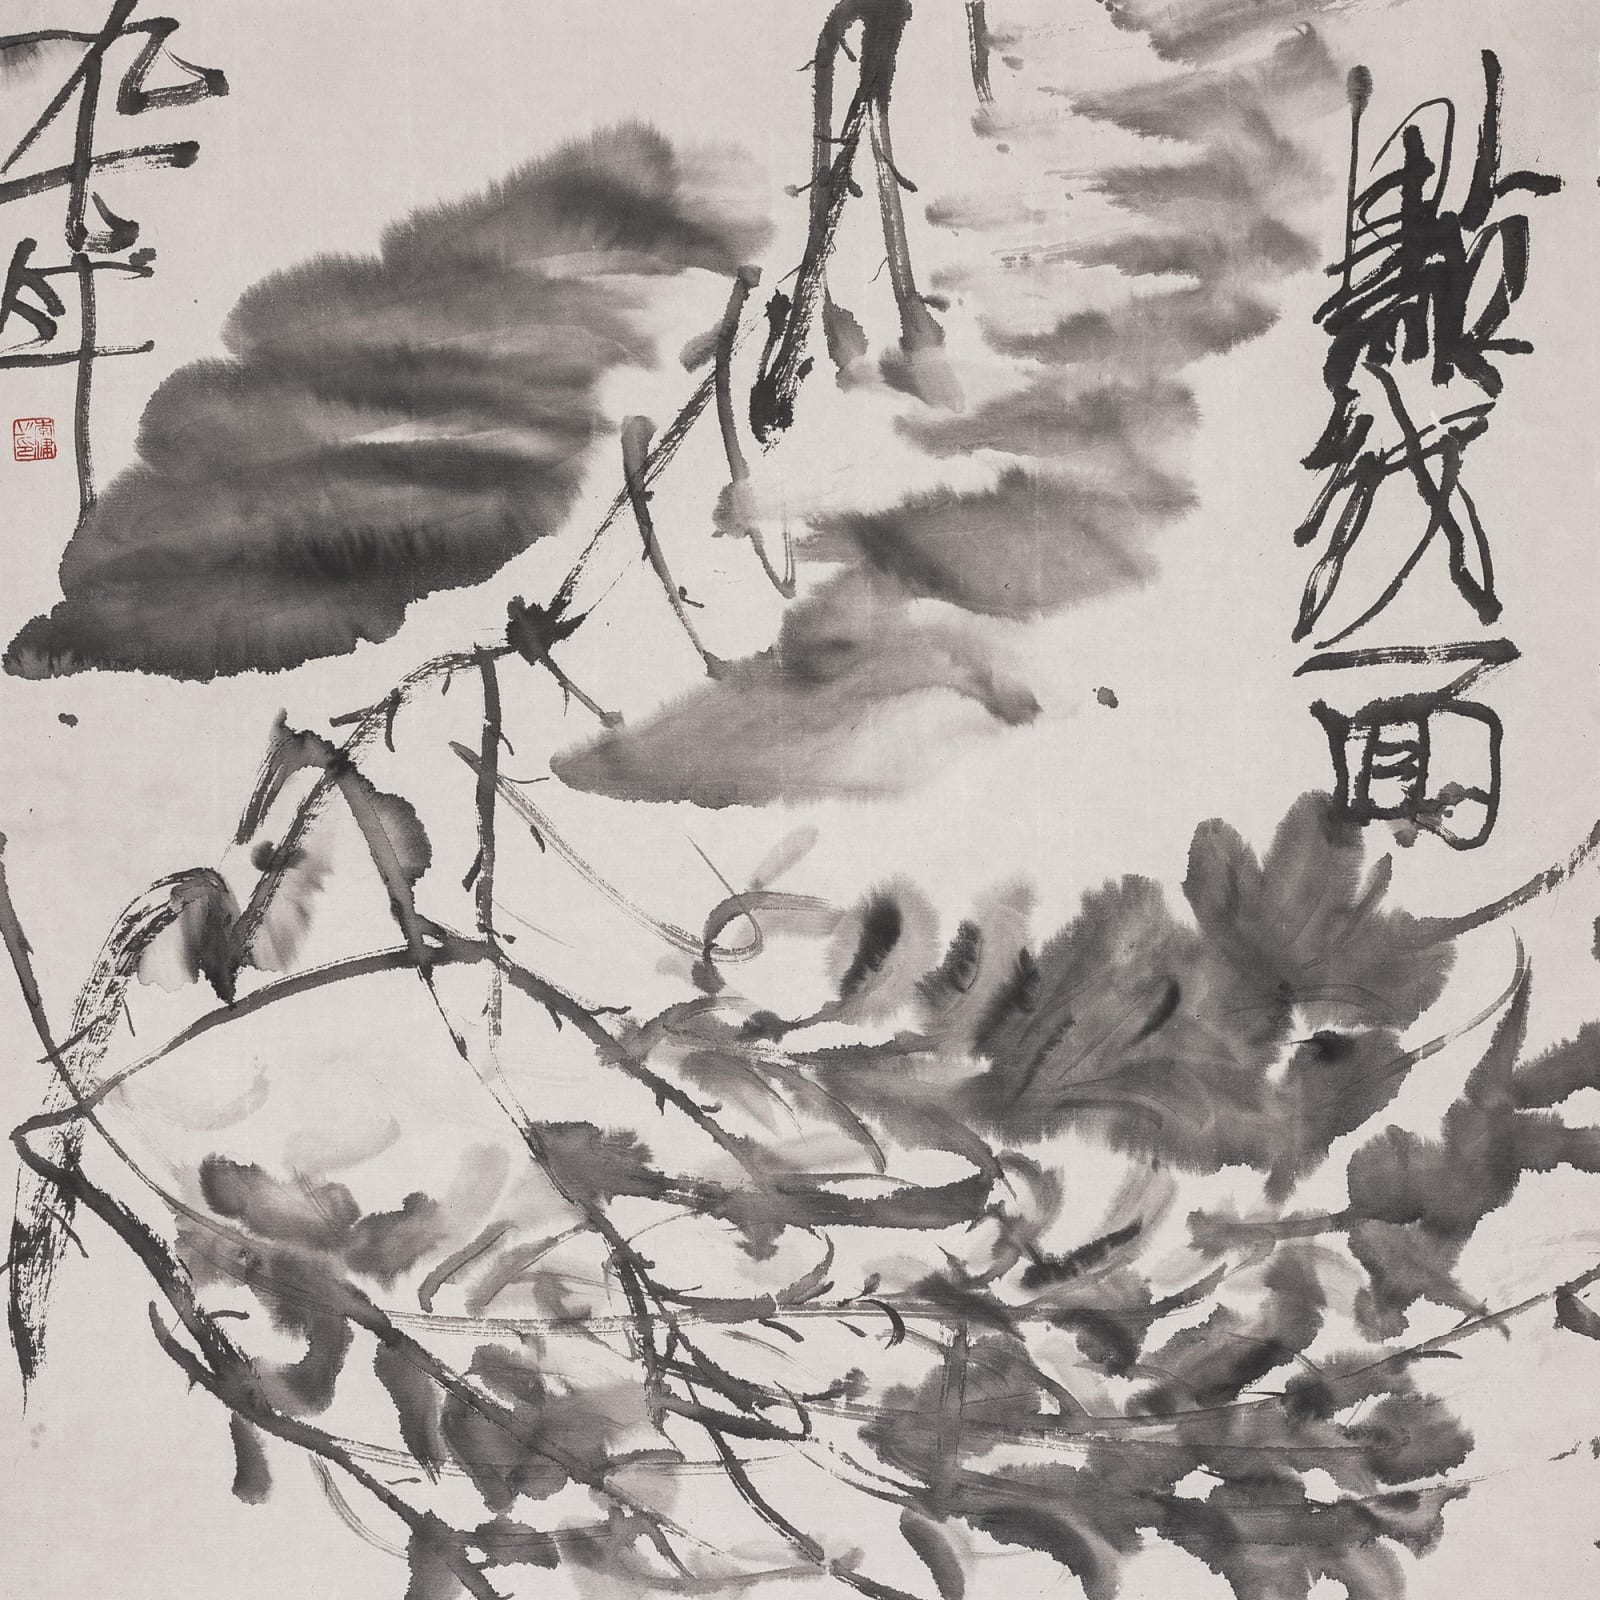 Li Jin 李津, Wild Cursive Series: Point, Line, and Plane 狂草系列:点线面, 1996